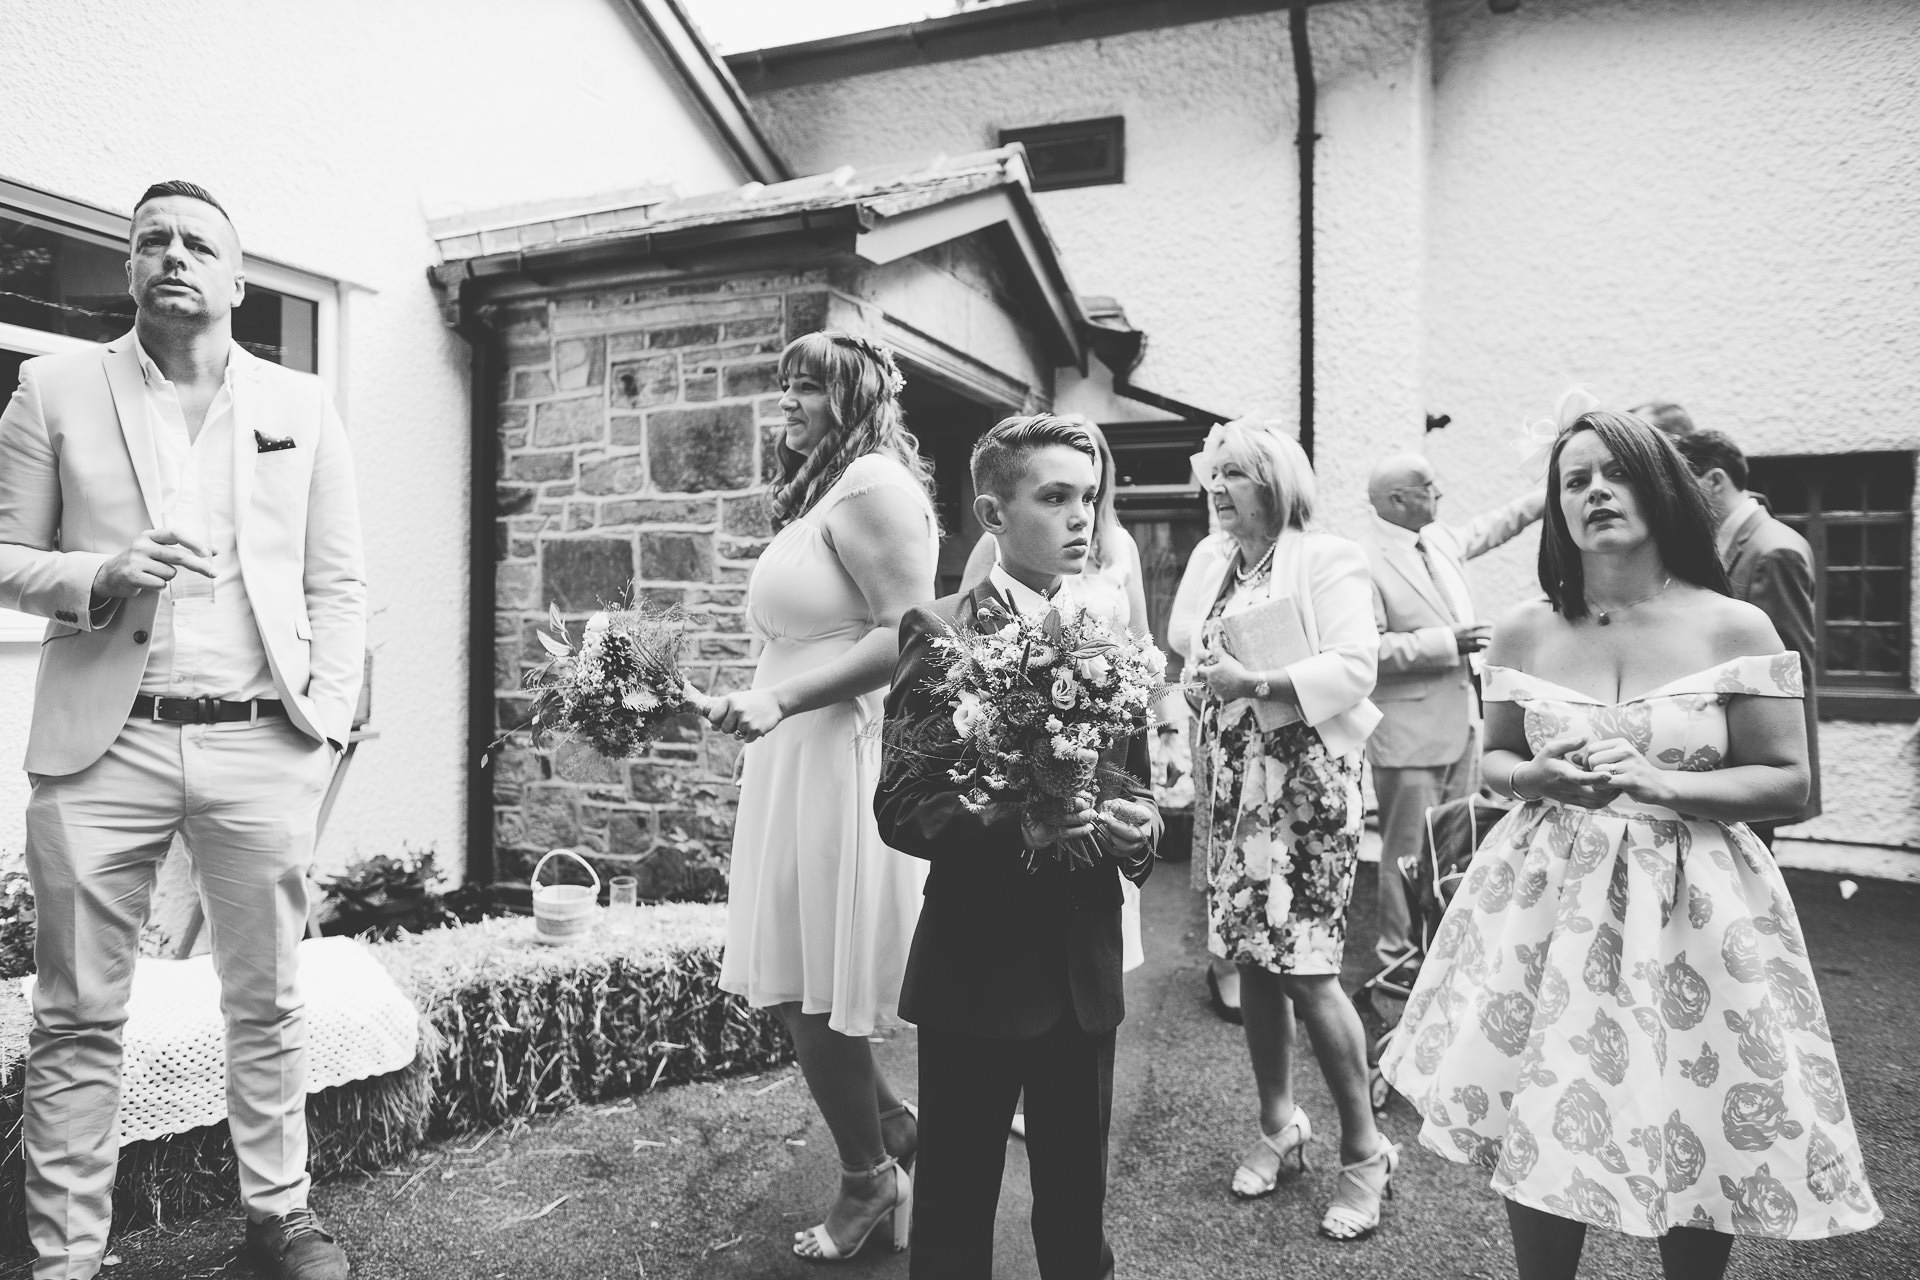 SPRING COTTAGE RIVINGTON WEDDING, SPRING COTTAGE WEDDING, FESTIVAL WEDDING, AYESHA PHOTOGRAPHY, BRIDE AND GROOM, VINTAGE WEDDING DRESS, TED BAKER SUIT, OUTDOOR WEDDING, SUMMER WEDDING, CREATIVE PHOTOGRAPHY, MANCHESTER WEDDING PHOTOGRAPHER, LANCASHIRE WEDDING PHOTOGRAPHER,